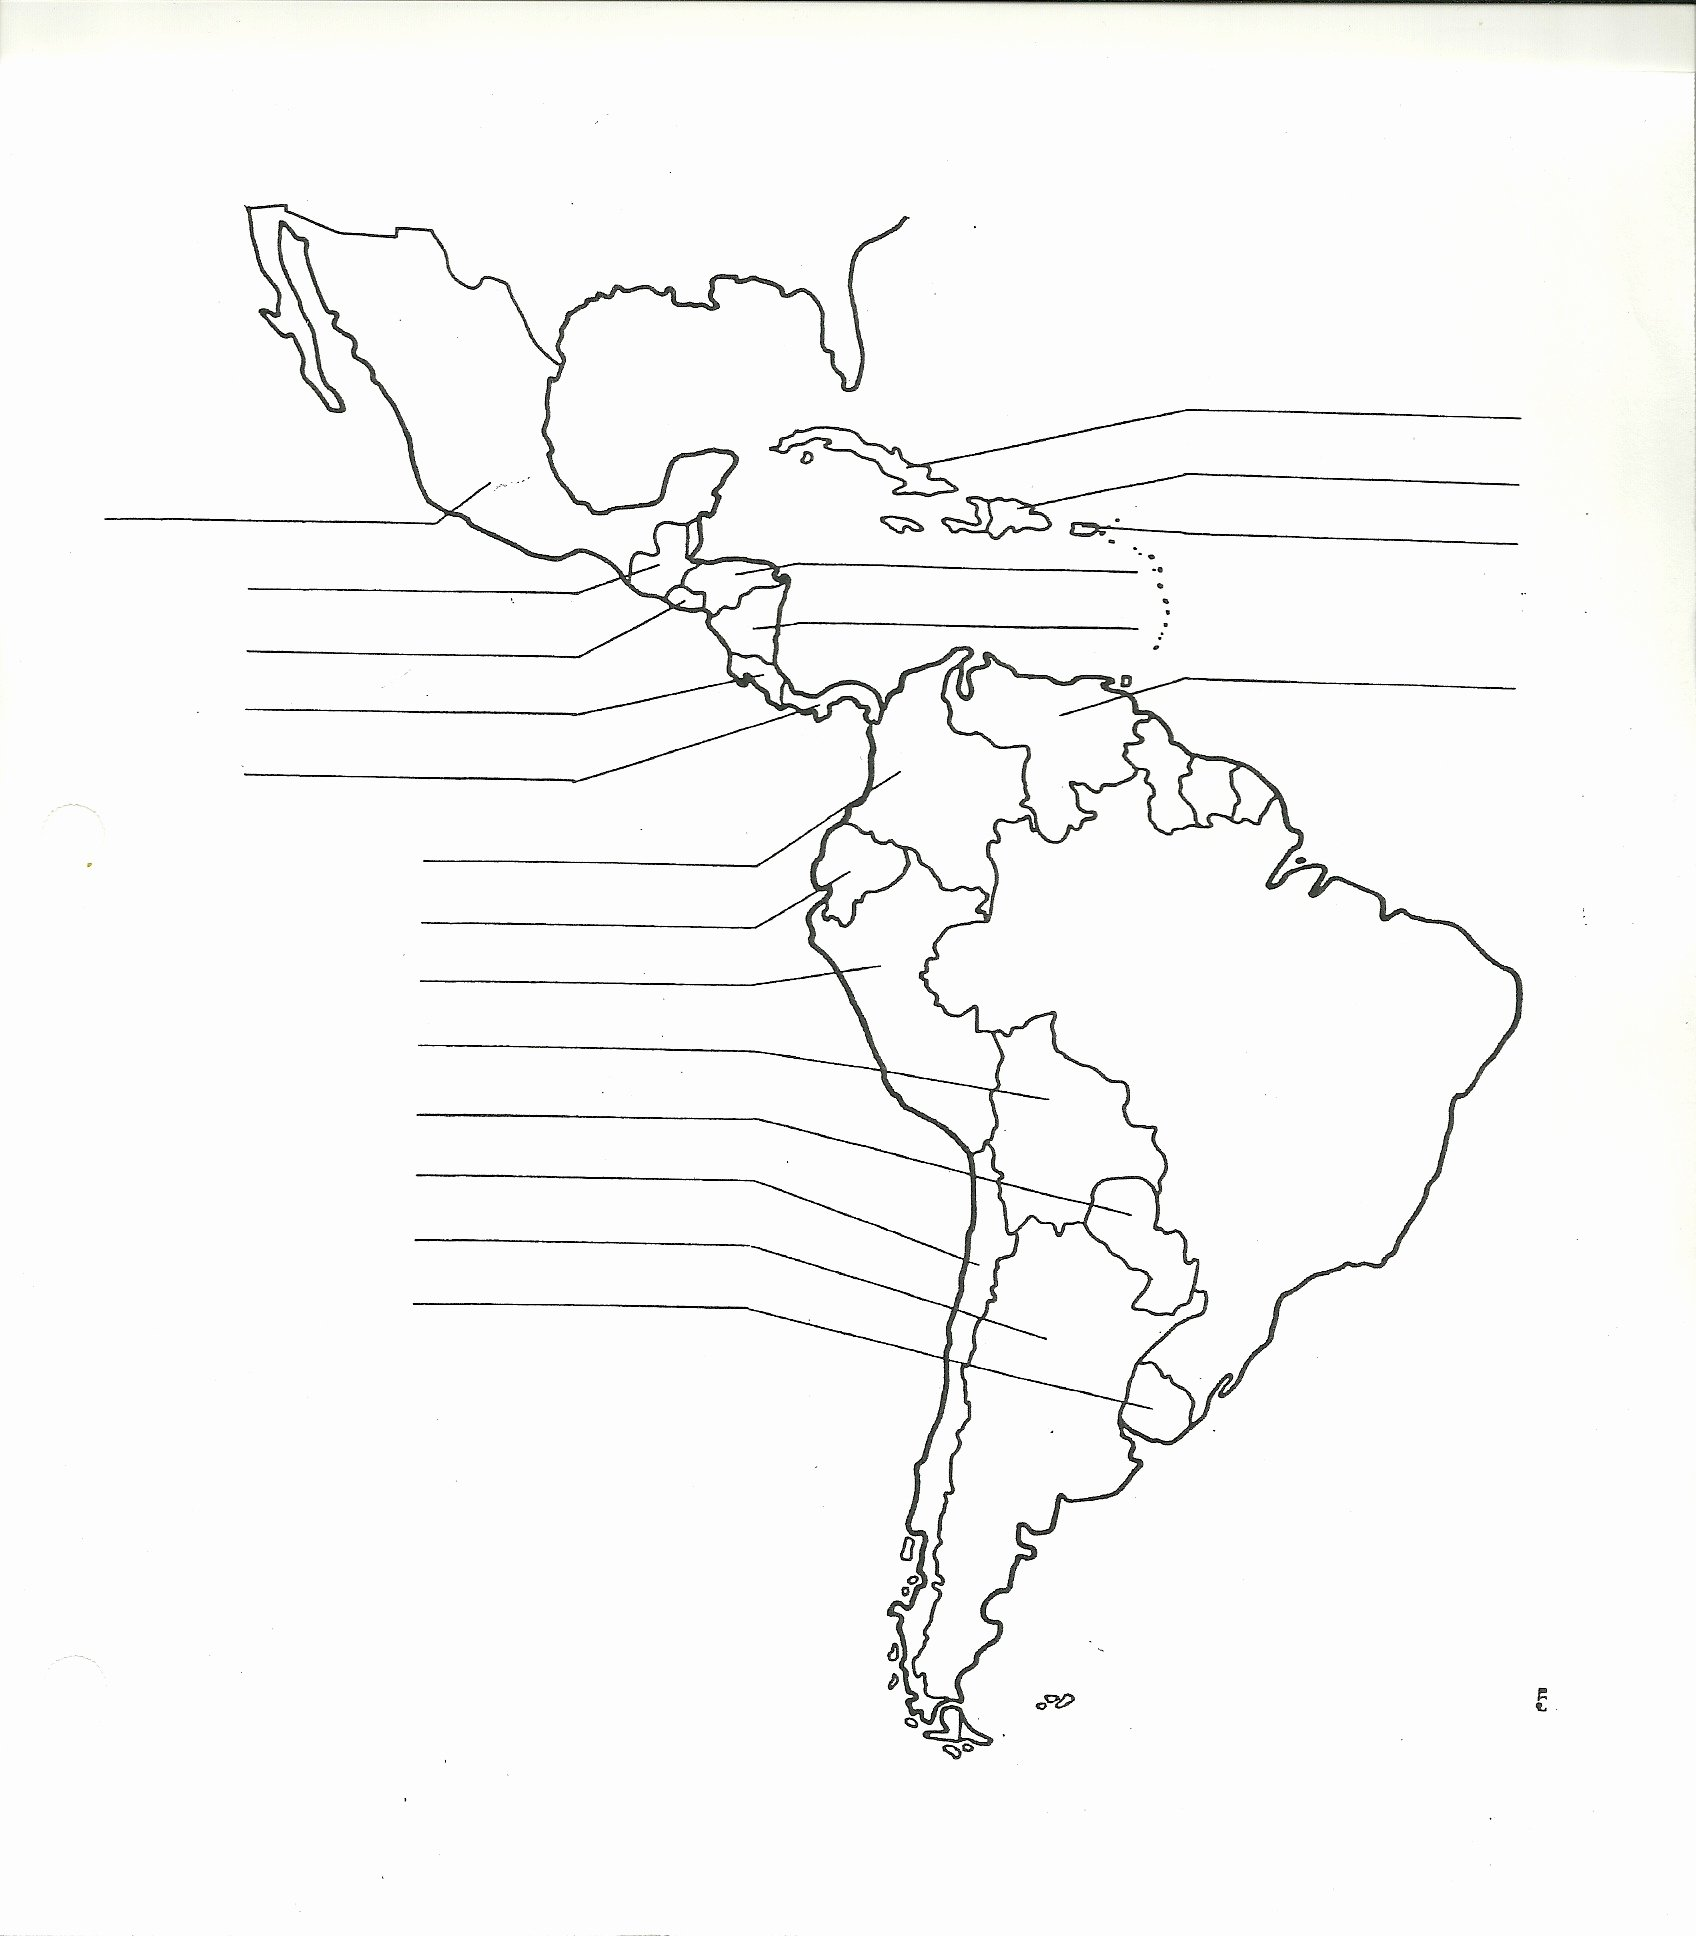 Spanish Speaking Countries Map Worksheet Fresh Imagequiz Countries